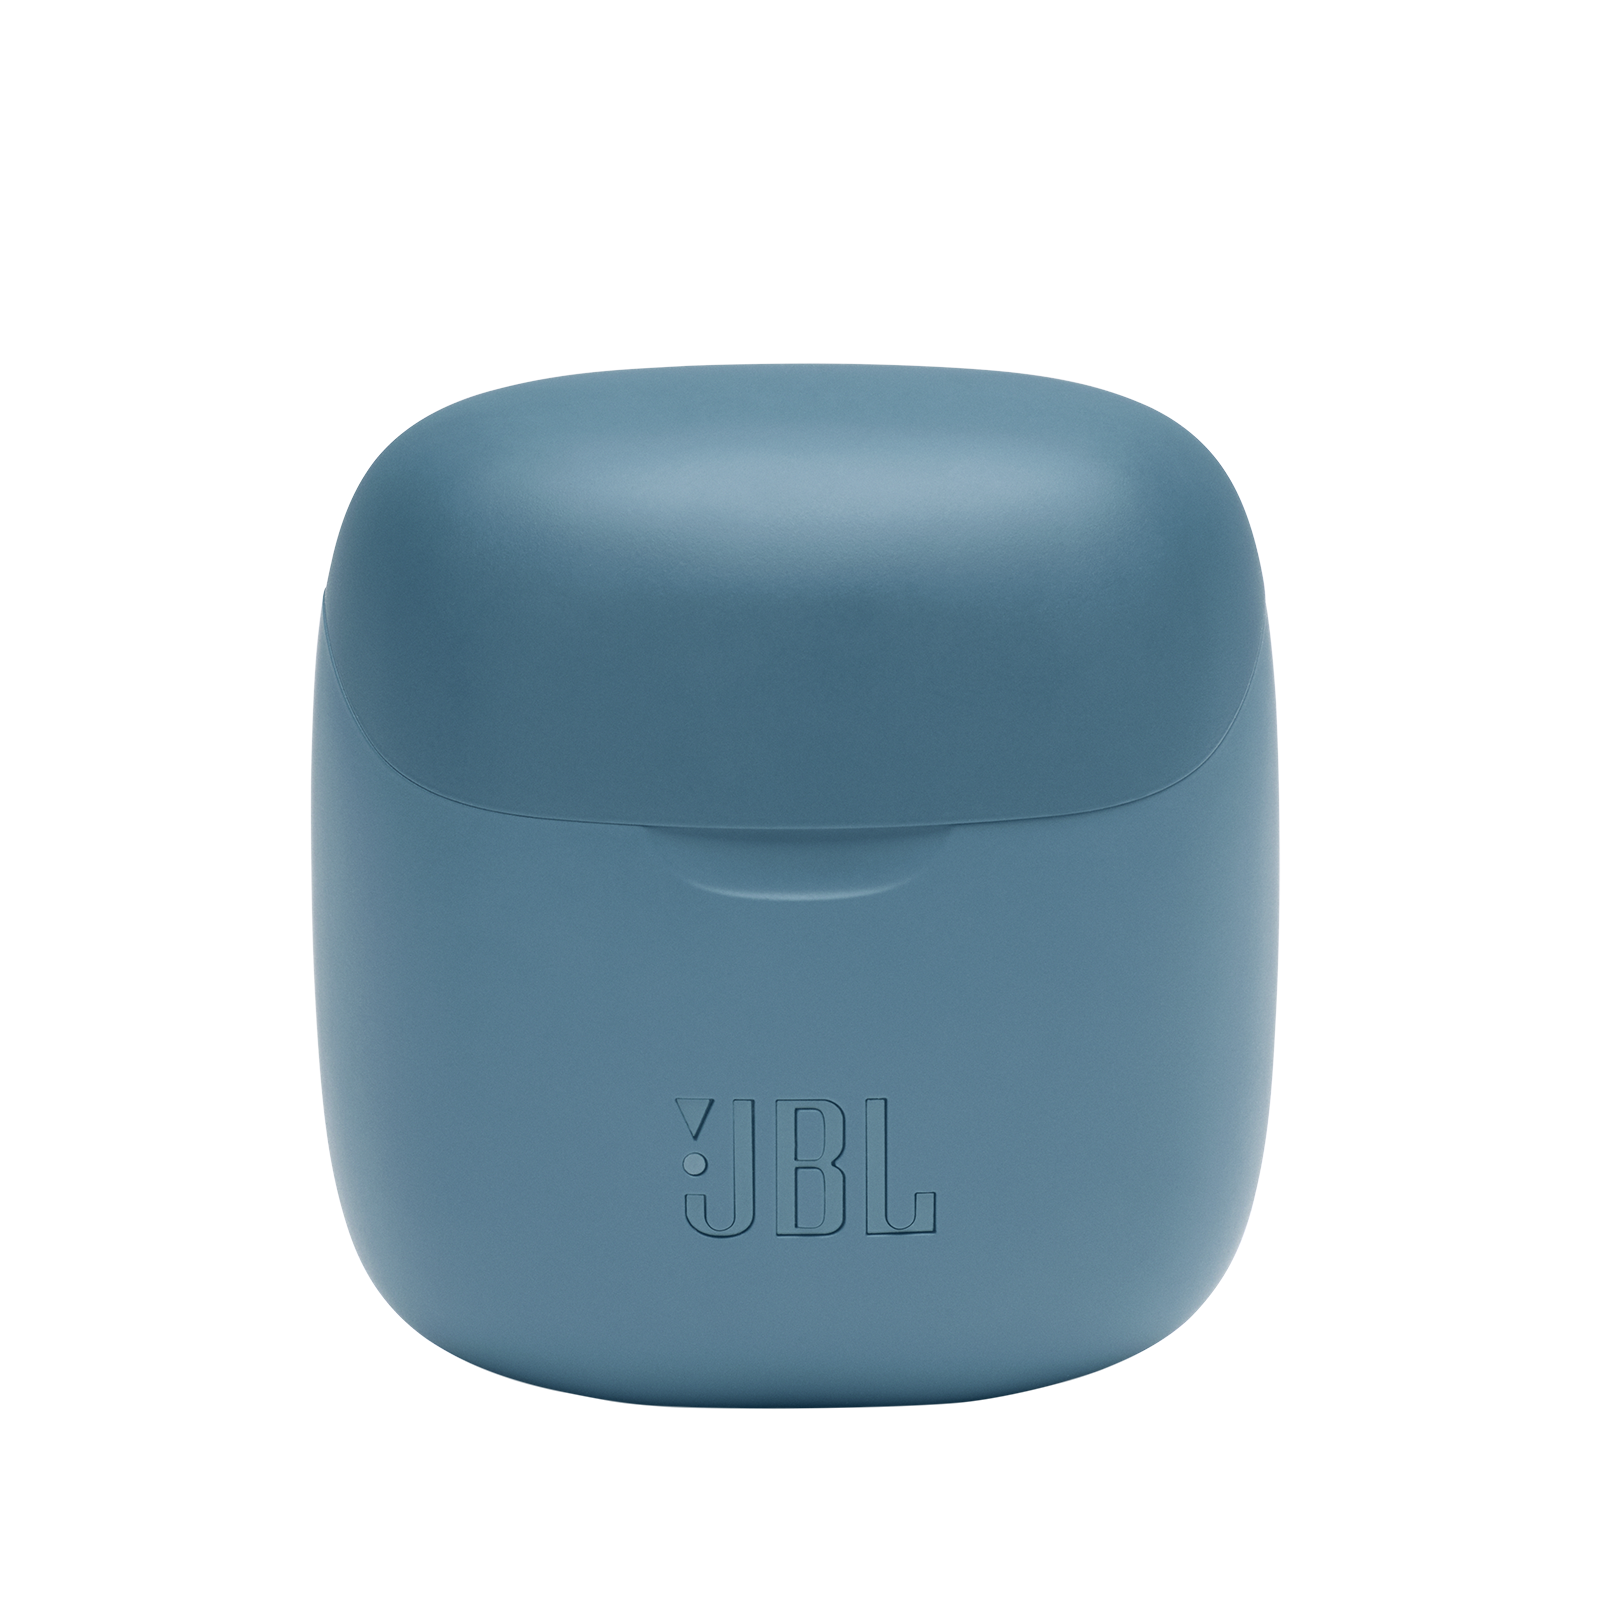 JBL TUNE 220TWS - Blue - True wireless earbuds - Detailshot 3